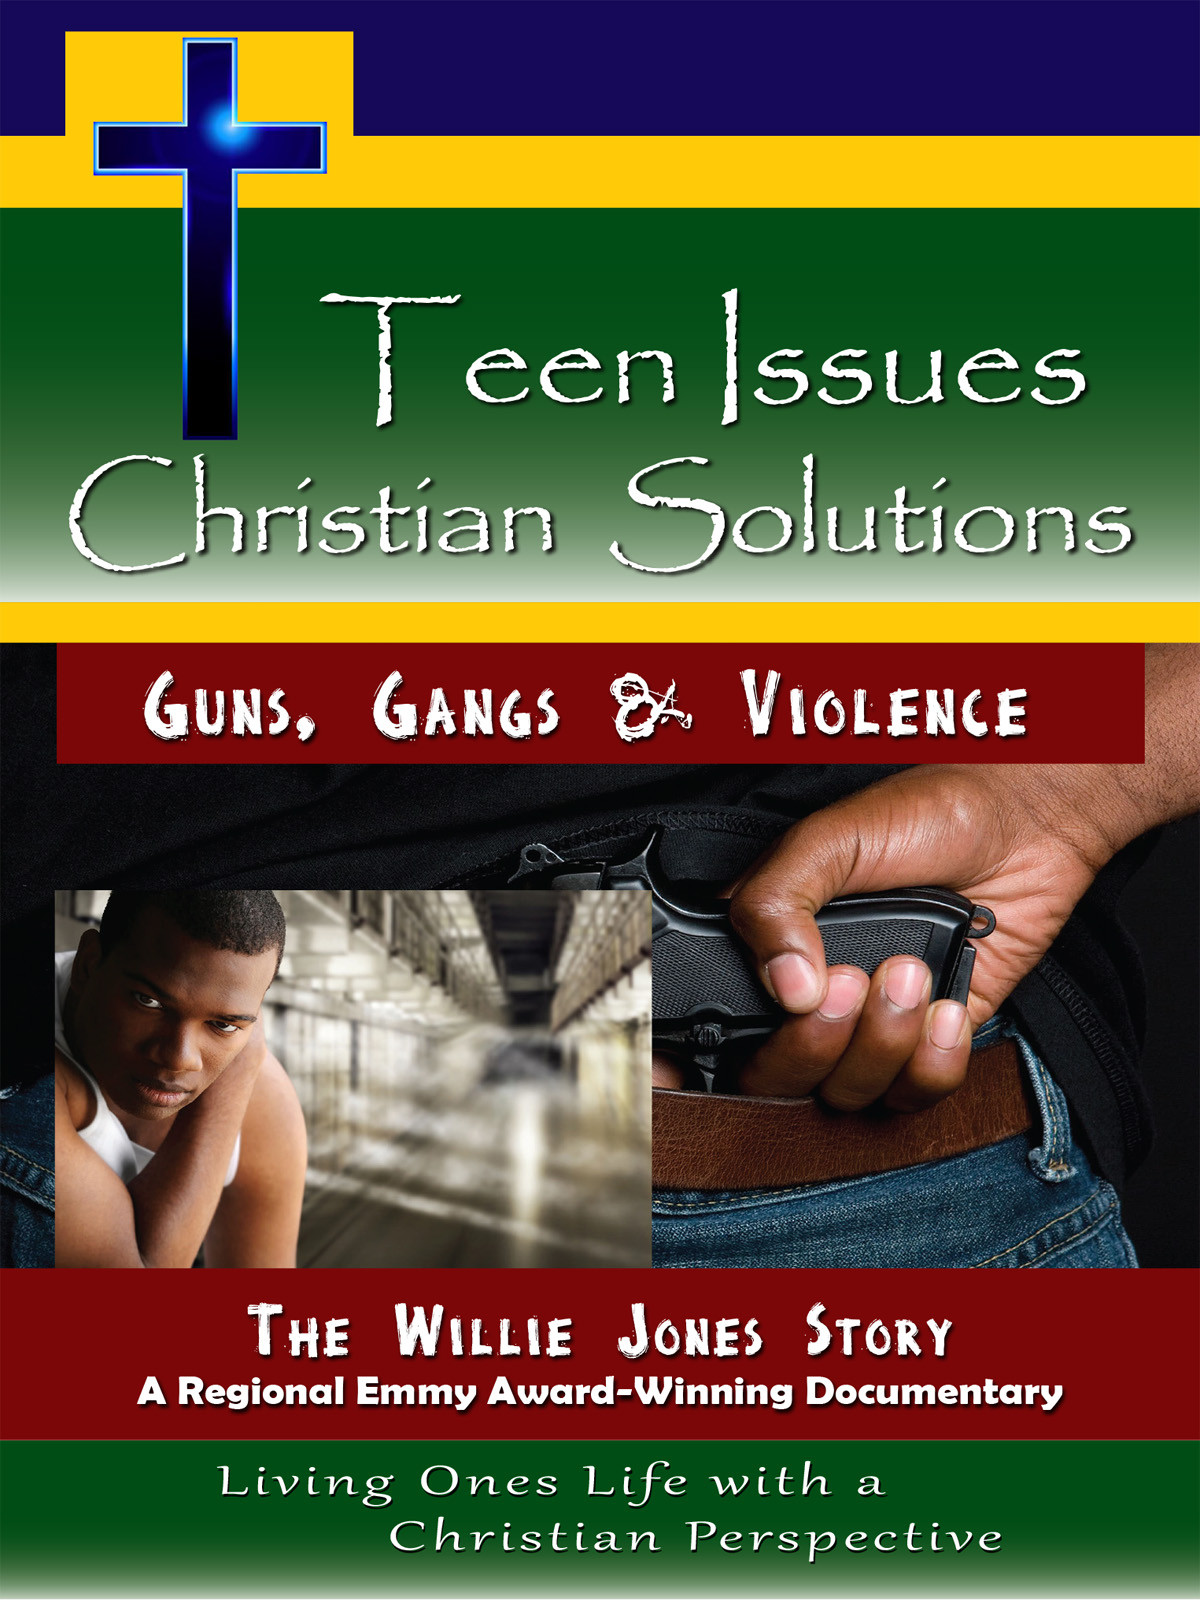 CH9992 - Guns, Gangs & Violence The Willie Jones Story